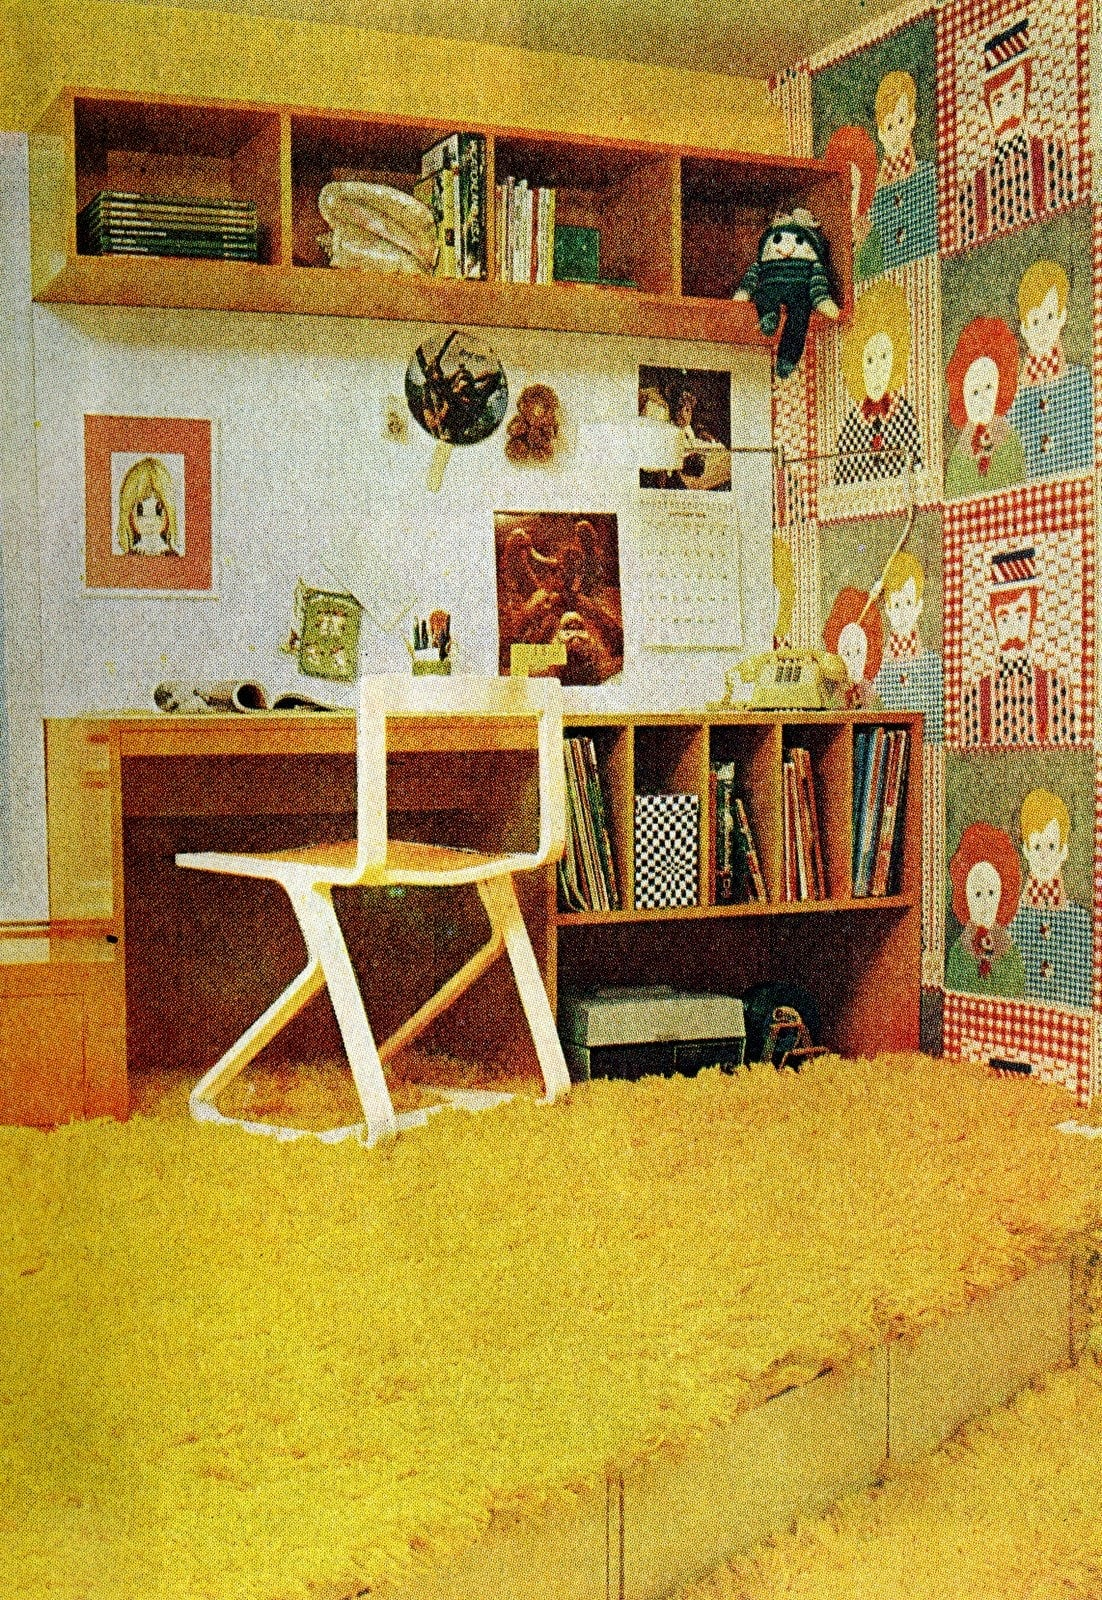 Vintage 70s small bedroom idea -hag carpet and platforms from 1976 (2)